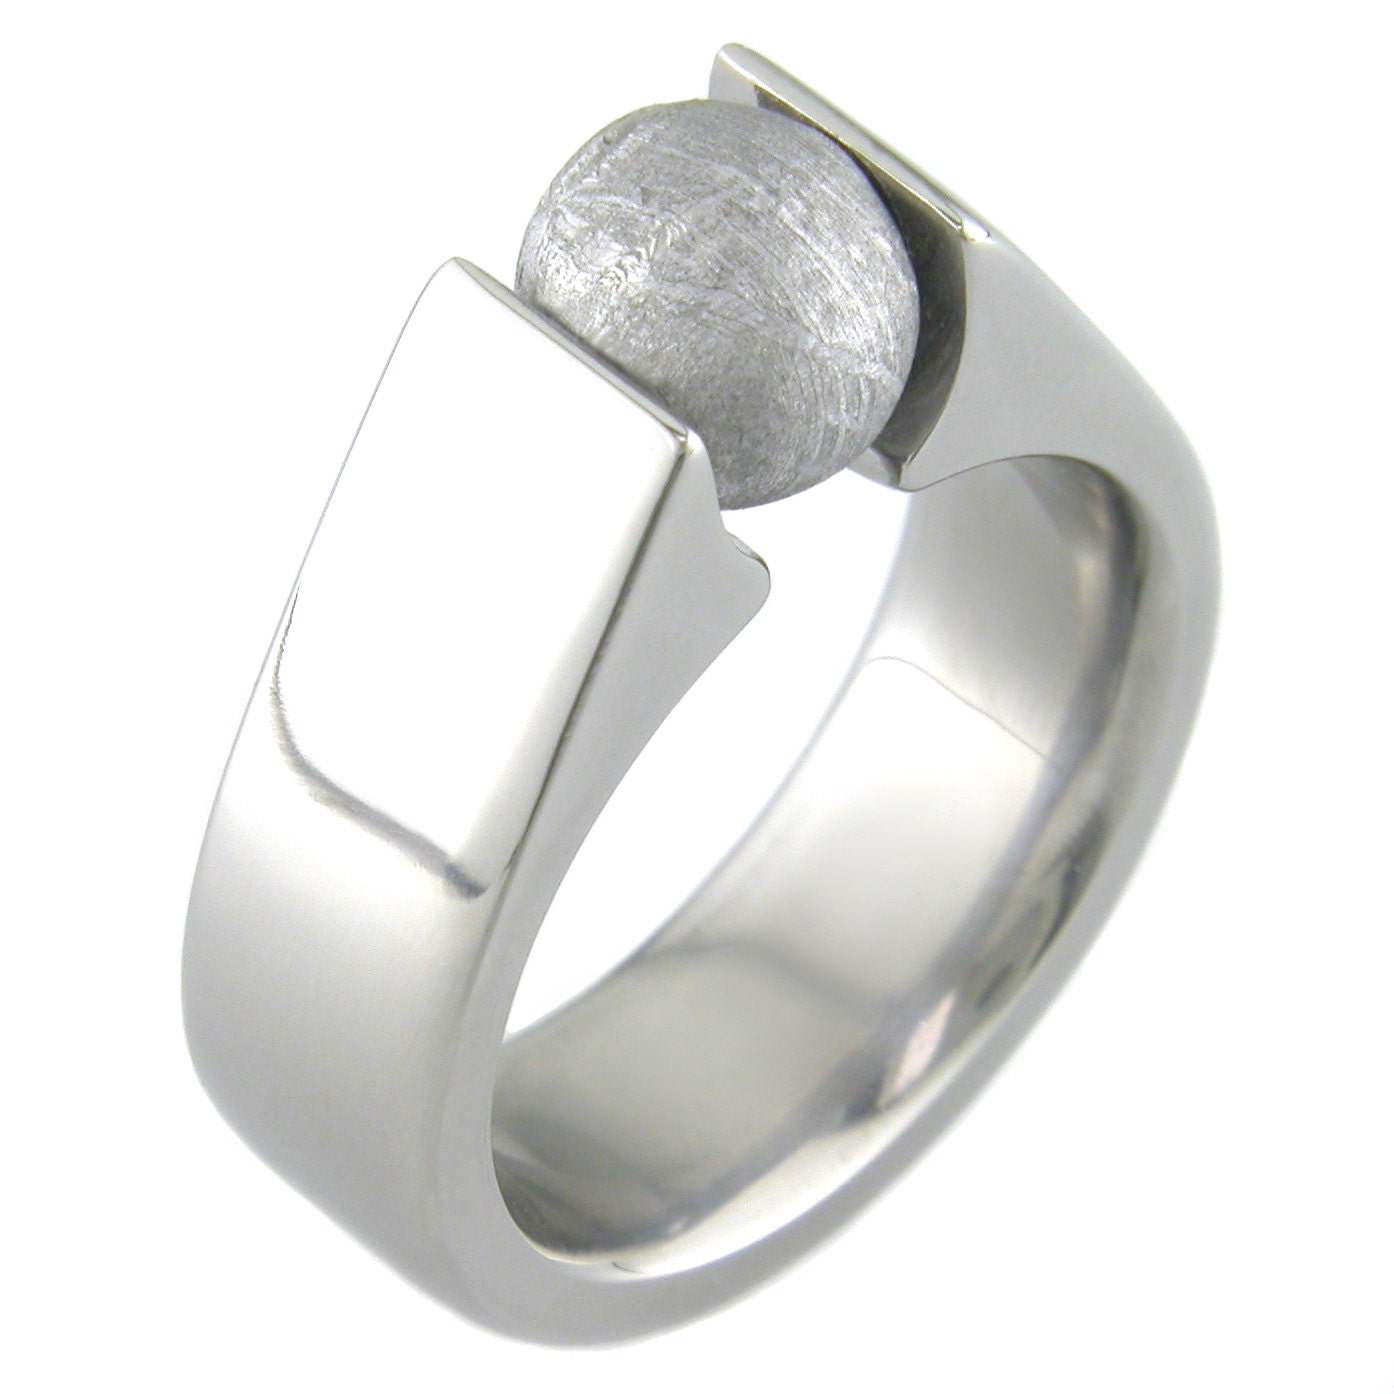 shown ring titanium with enfield rings wrenches wedding is size jewellery